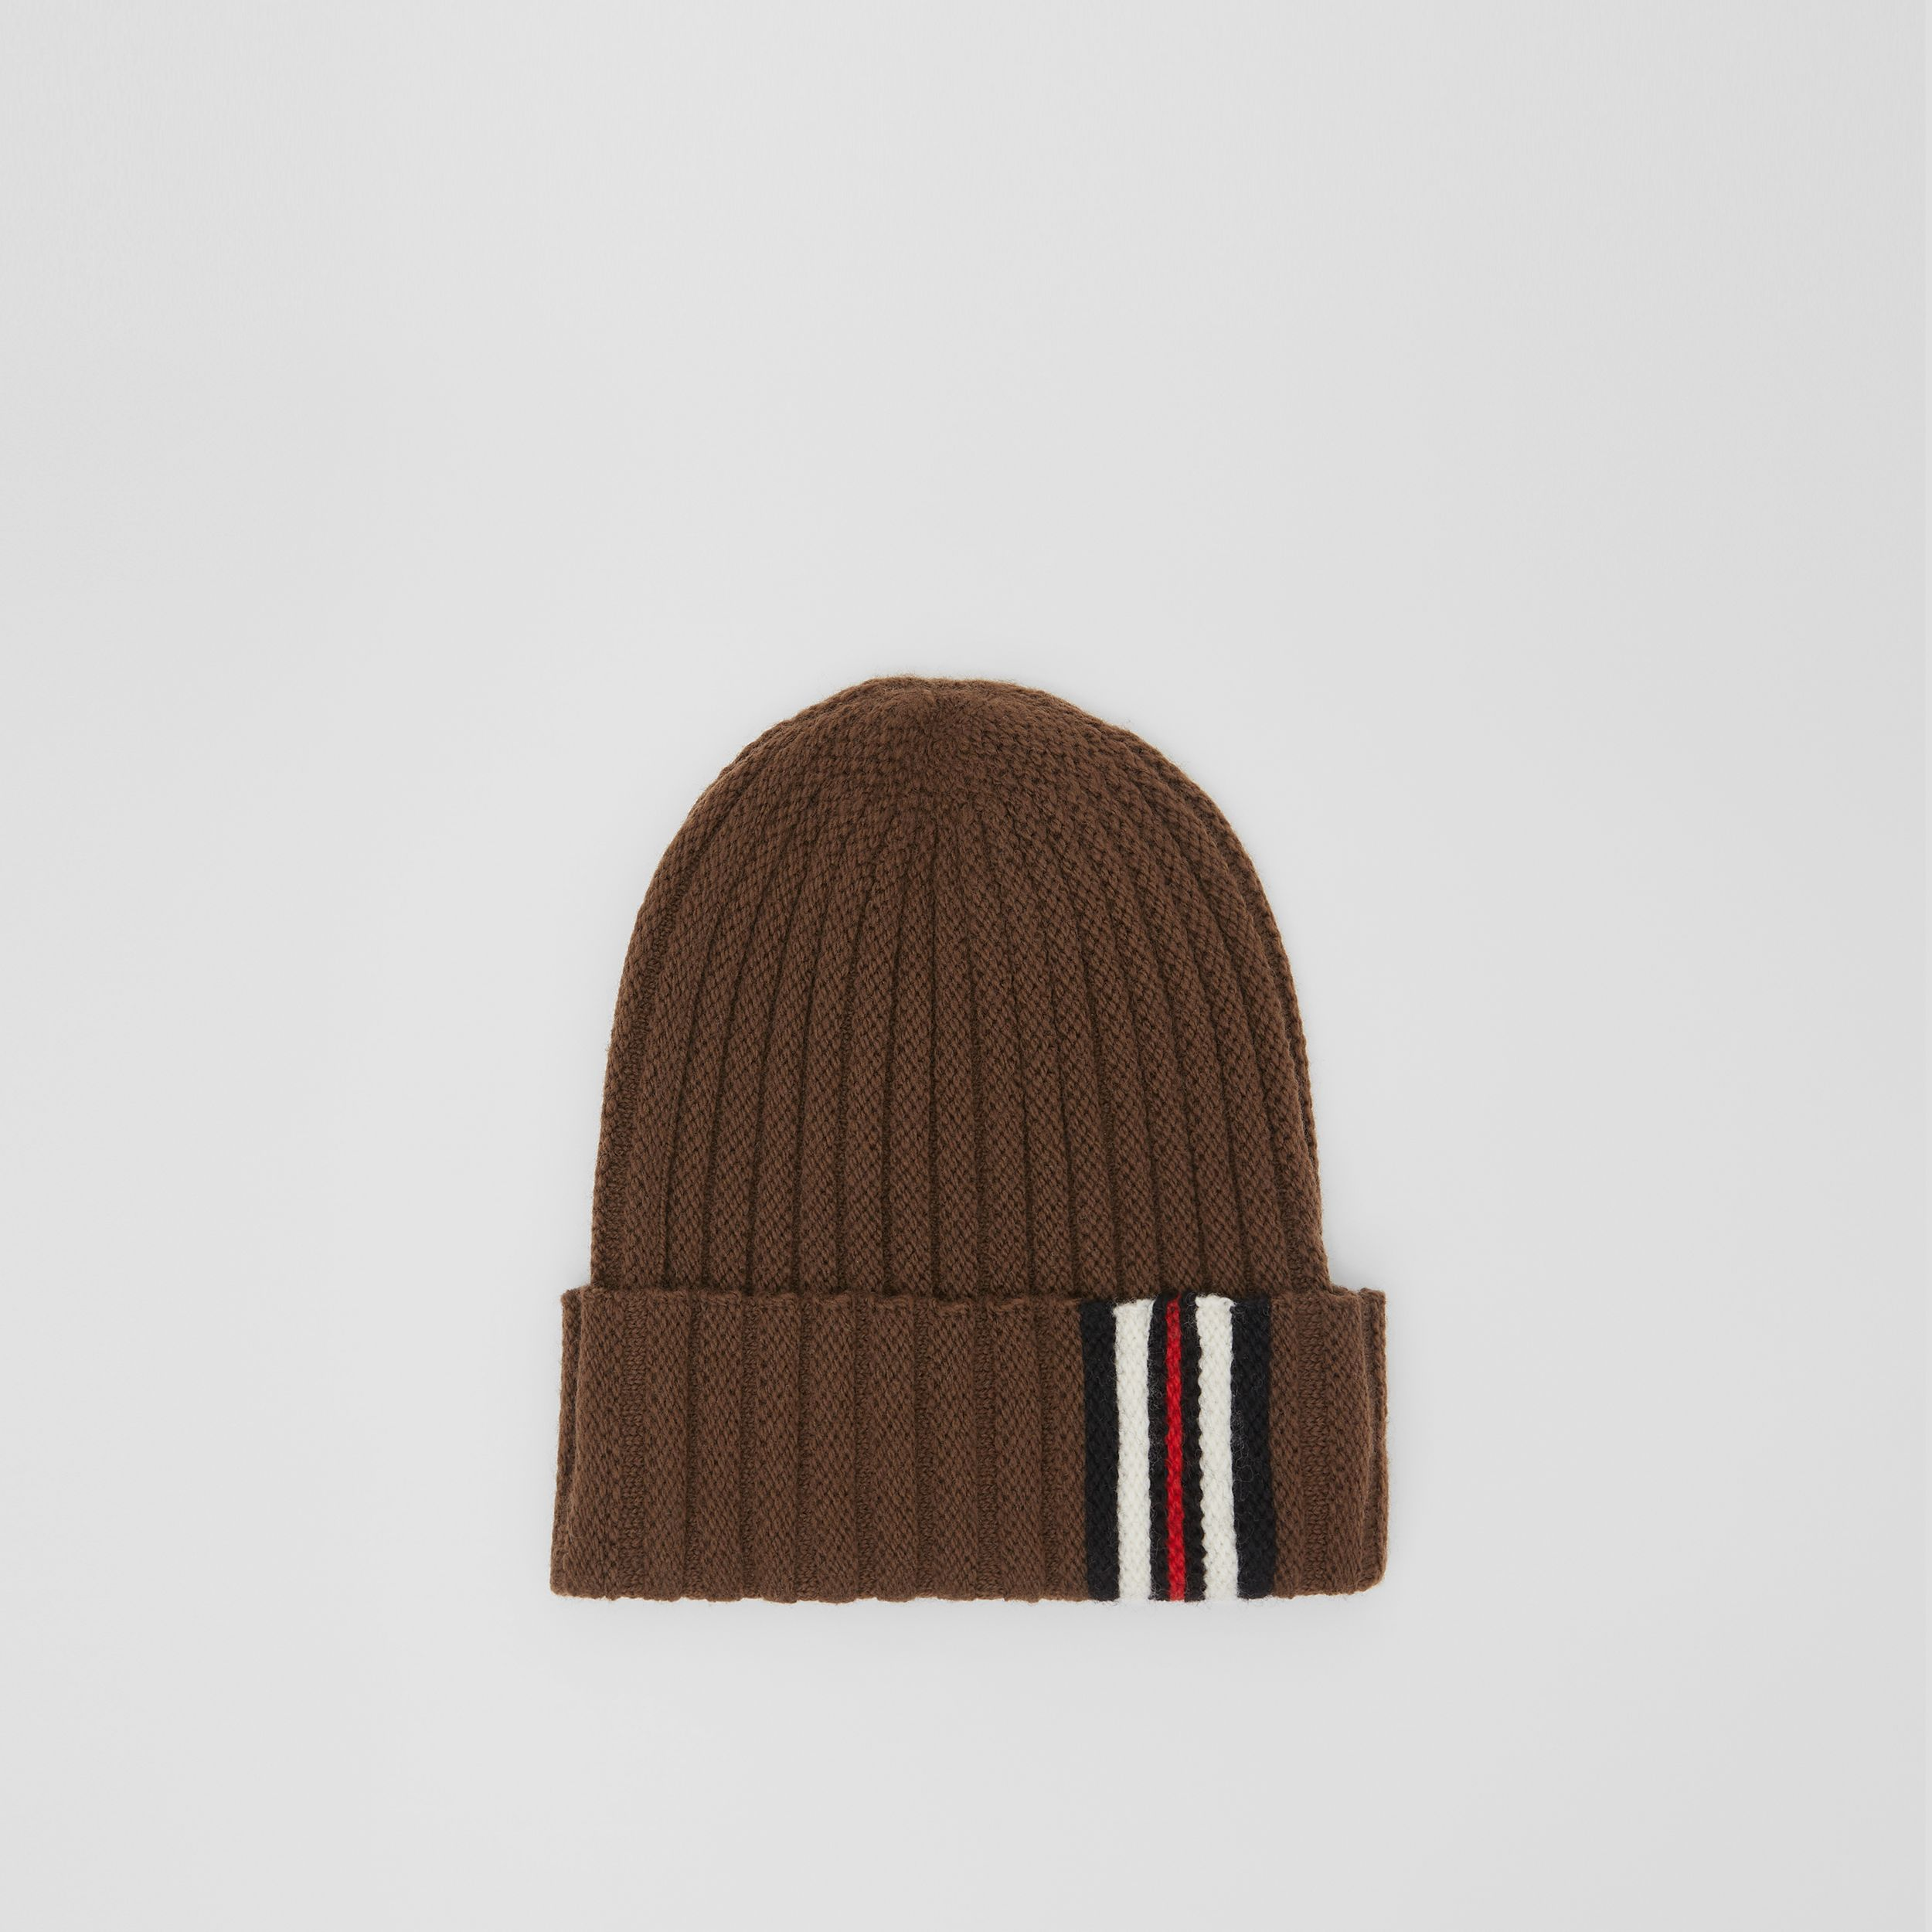 Stripe Detail Rib Knit Wool Beanie in Brown | Burberry - 1